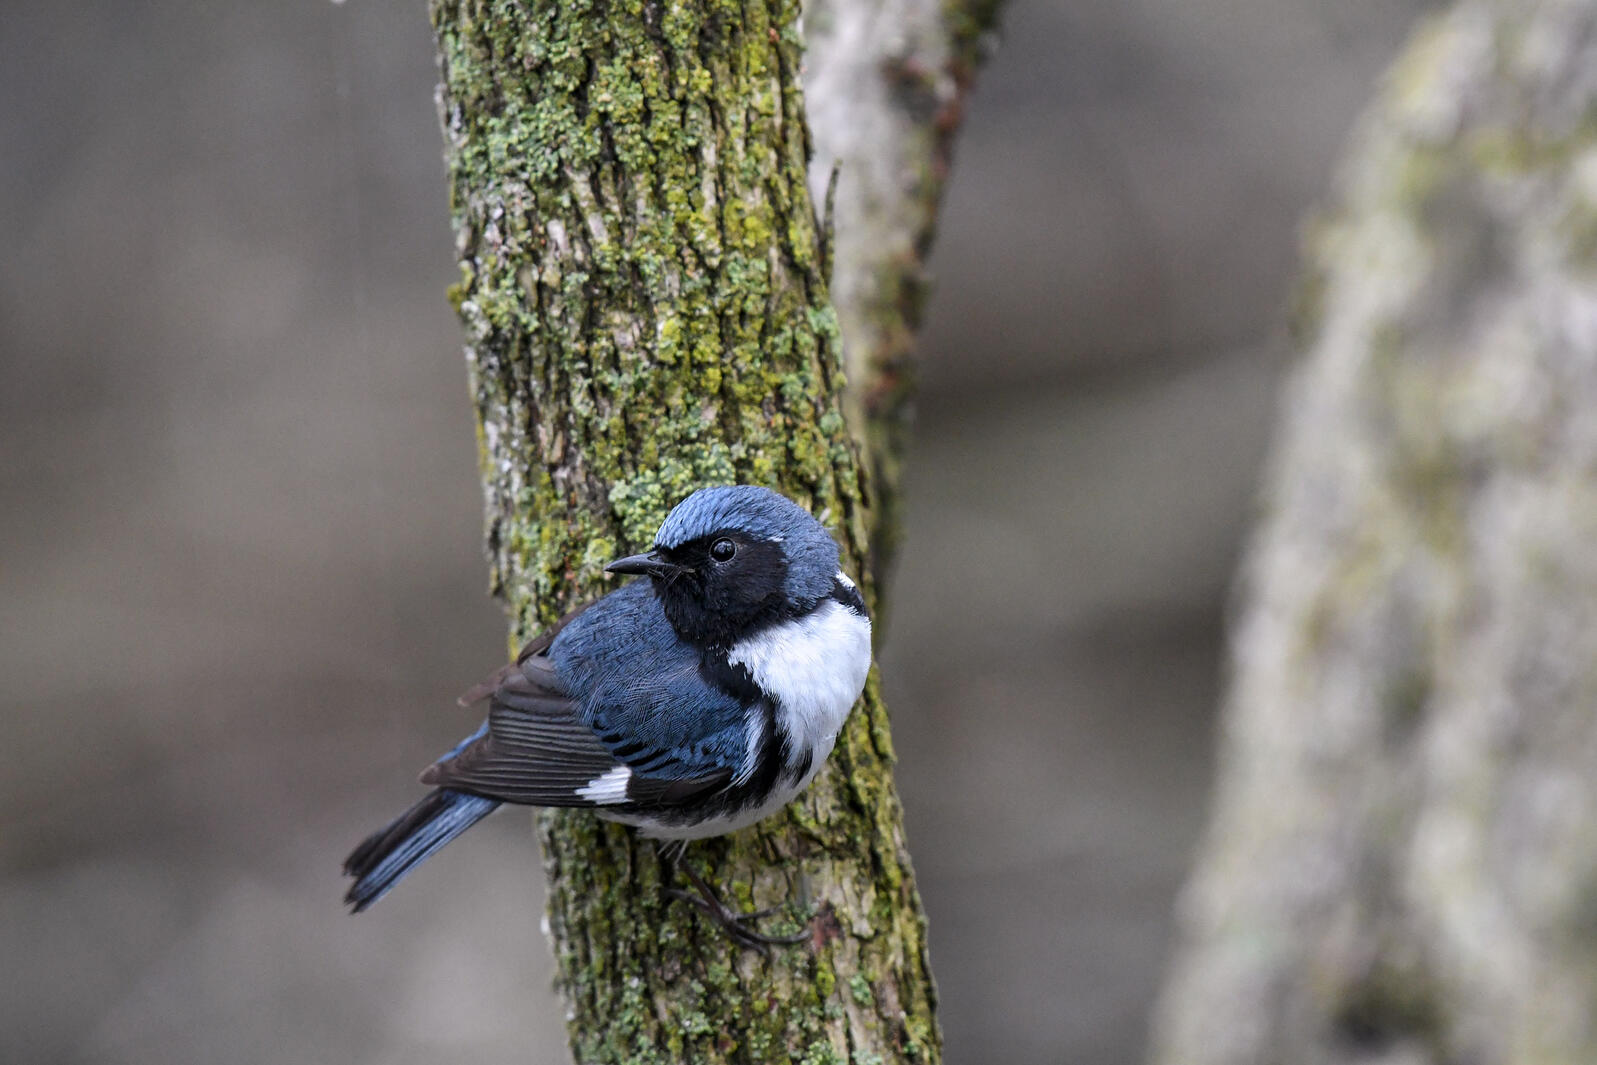 Black-throated Blue Warblers have shifted the timing of their spring and fall migrations over the past fifty years. Kyle Horton